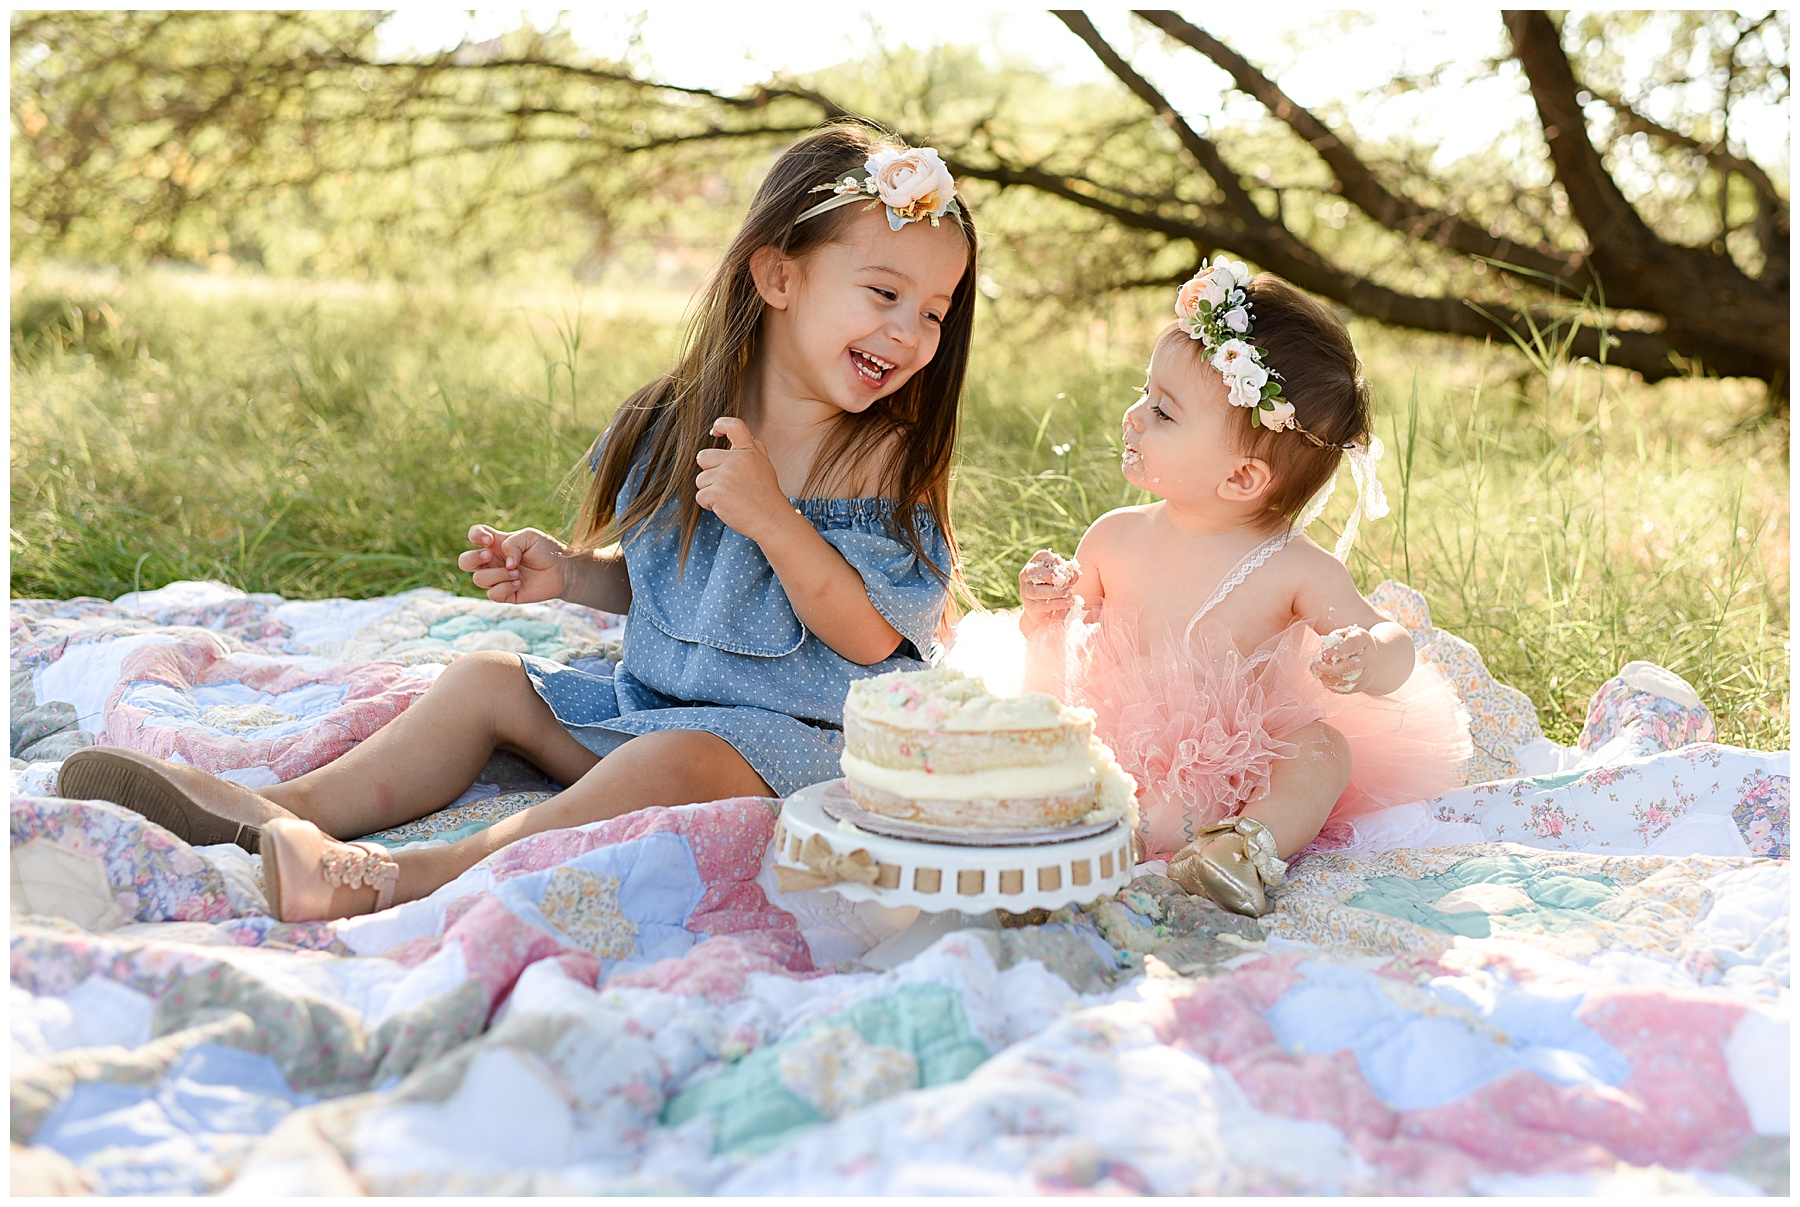 Giggling Sisters | SweetLife photography